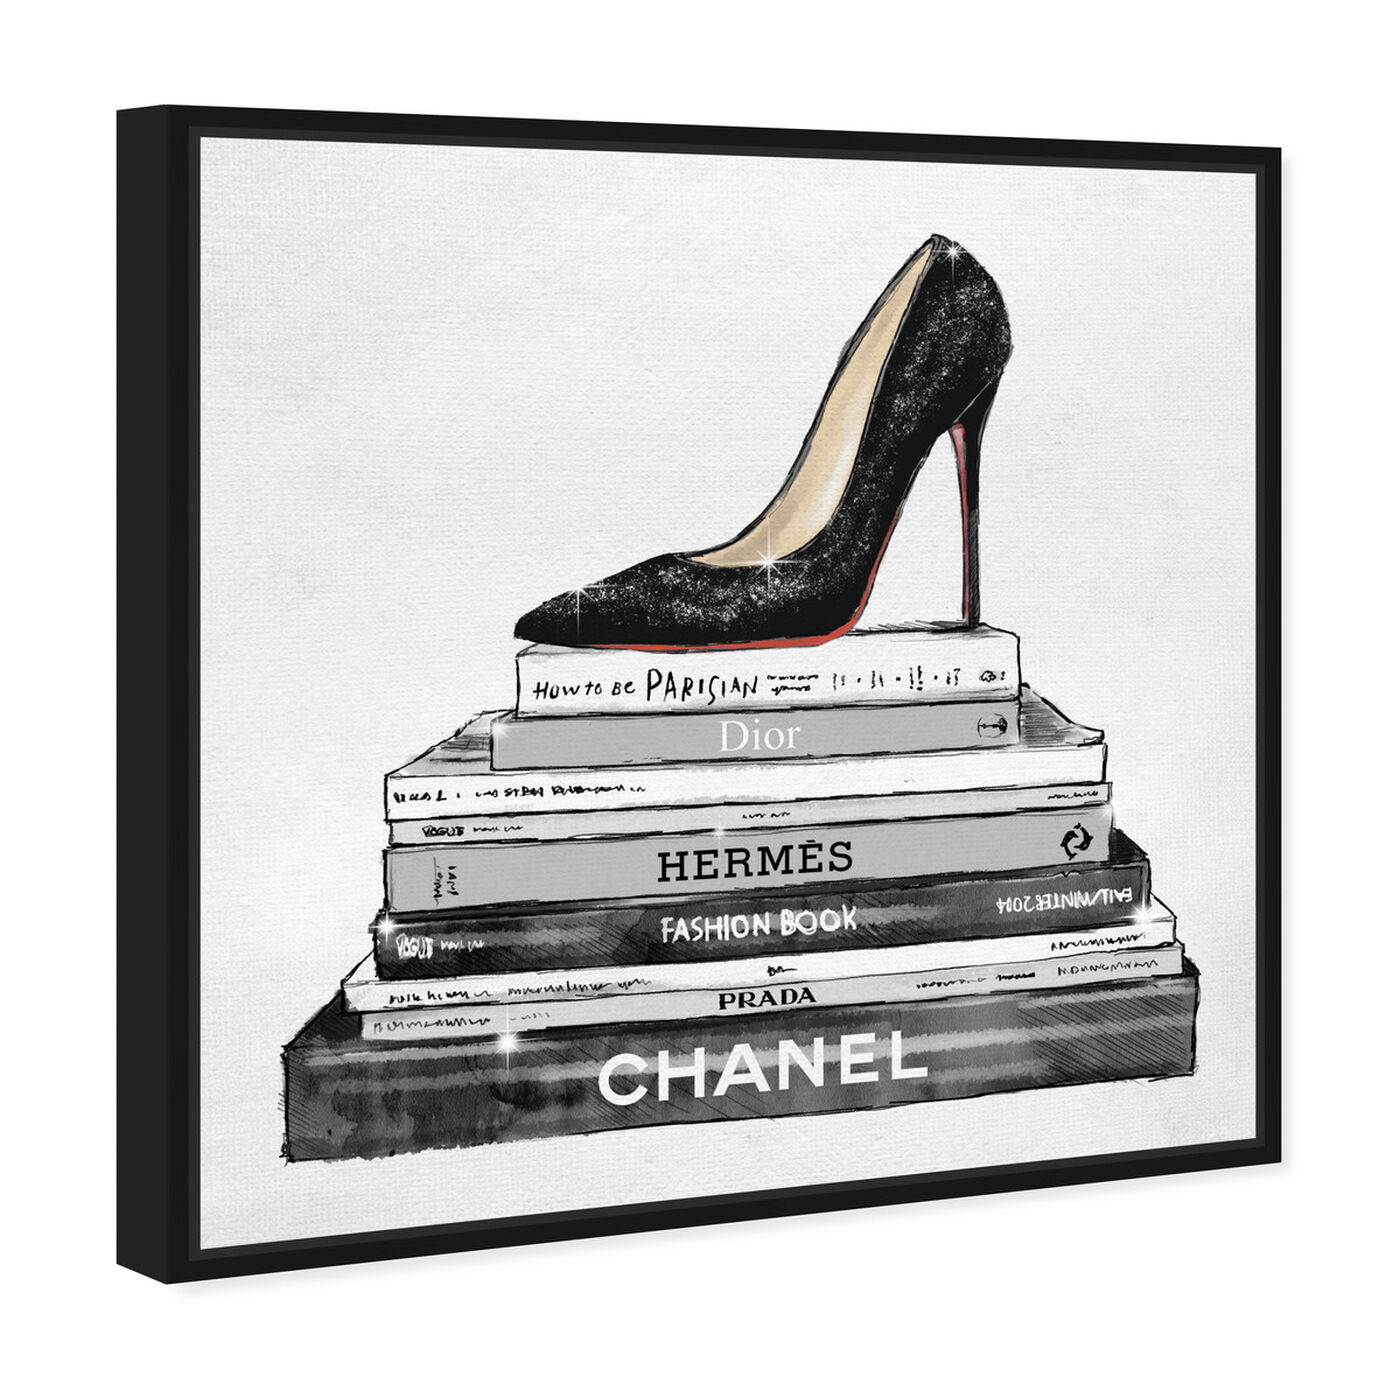 Angled view of Glam Shoe and Books featuring fashion and glam and shoes art.